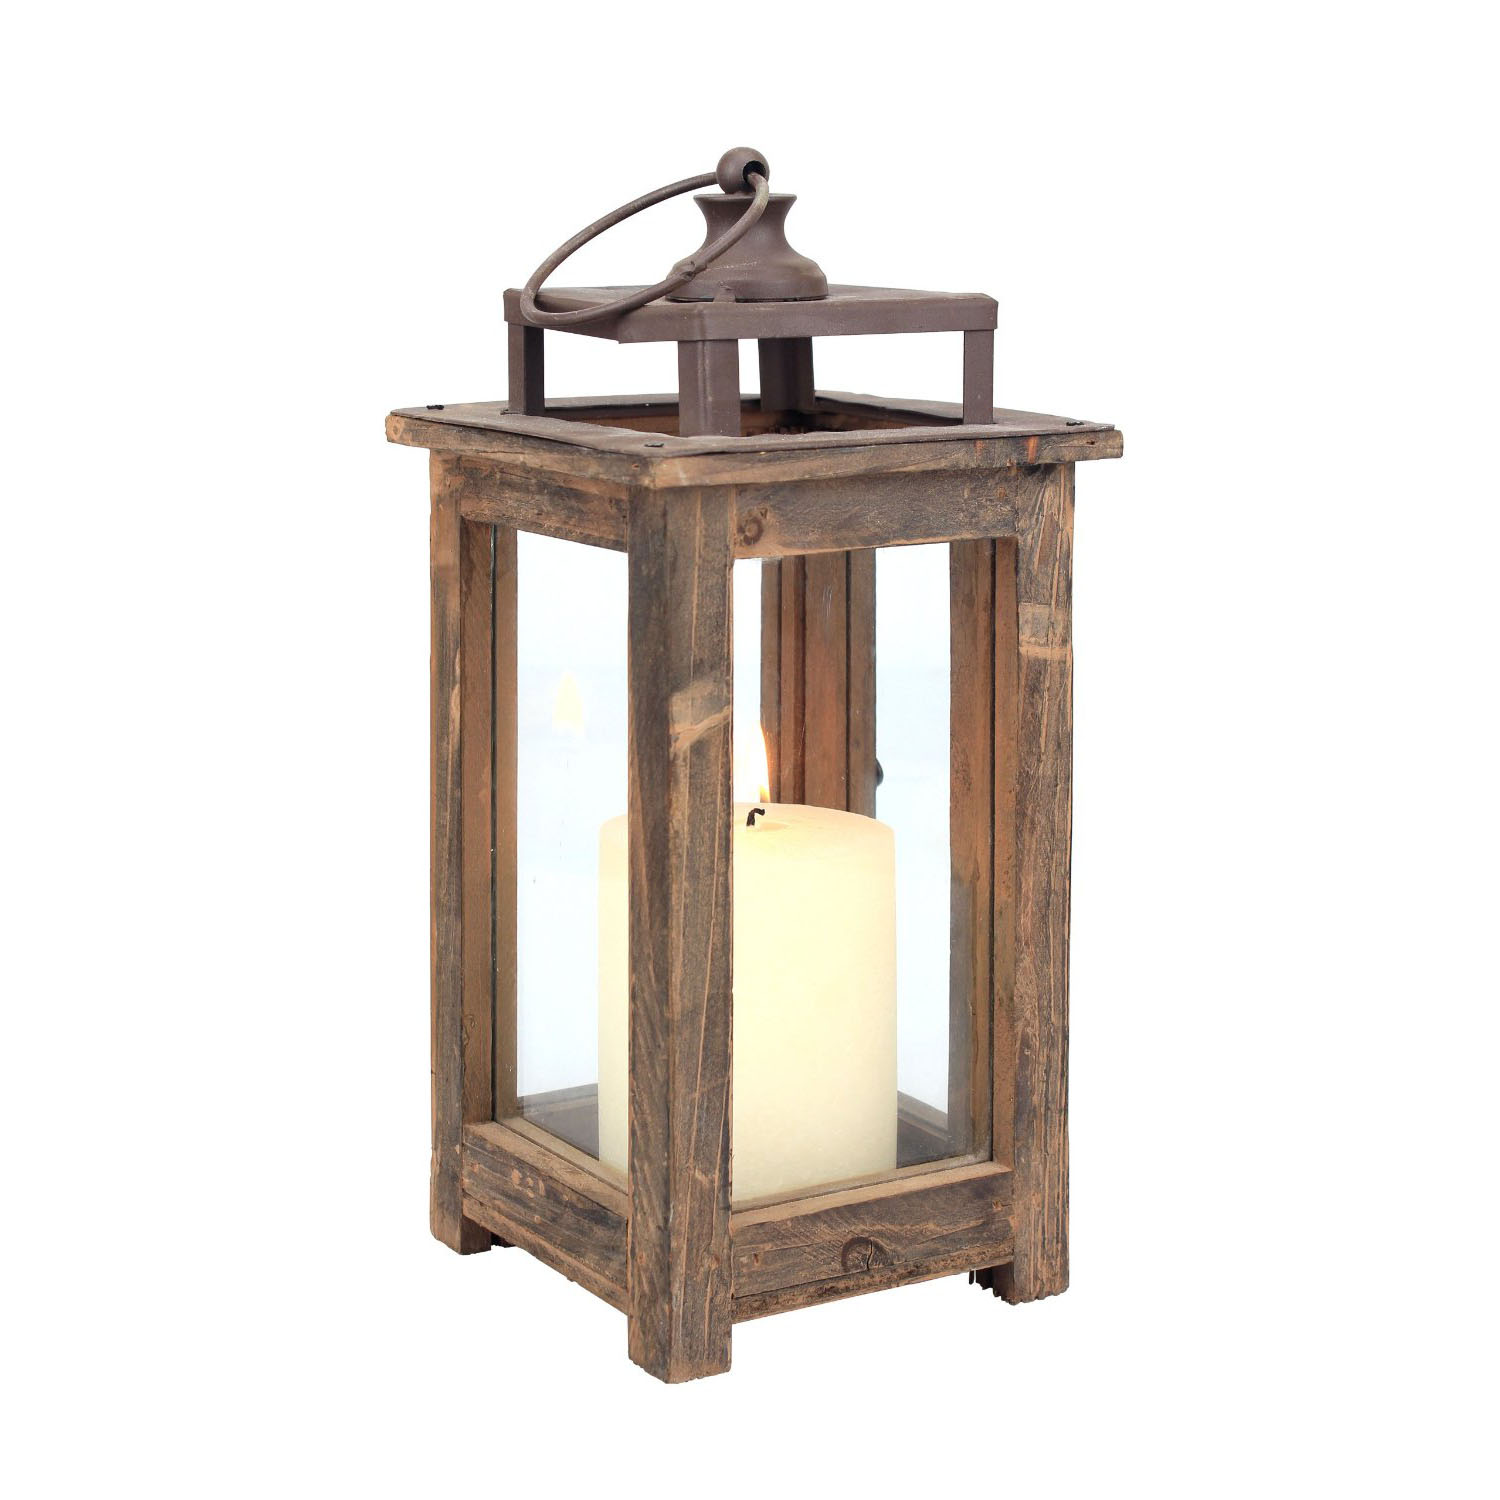 Attractive candle lanterns for outdoor lighting ideas with outdoor candle lanterns and hanging candle lanterns